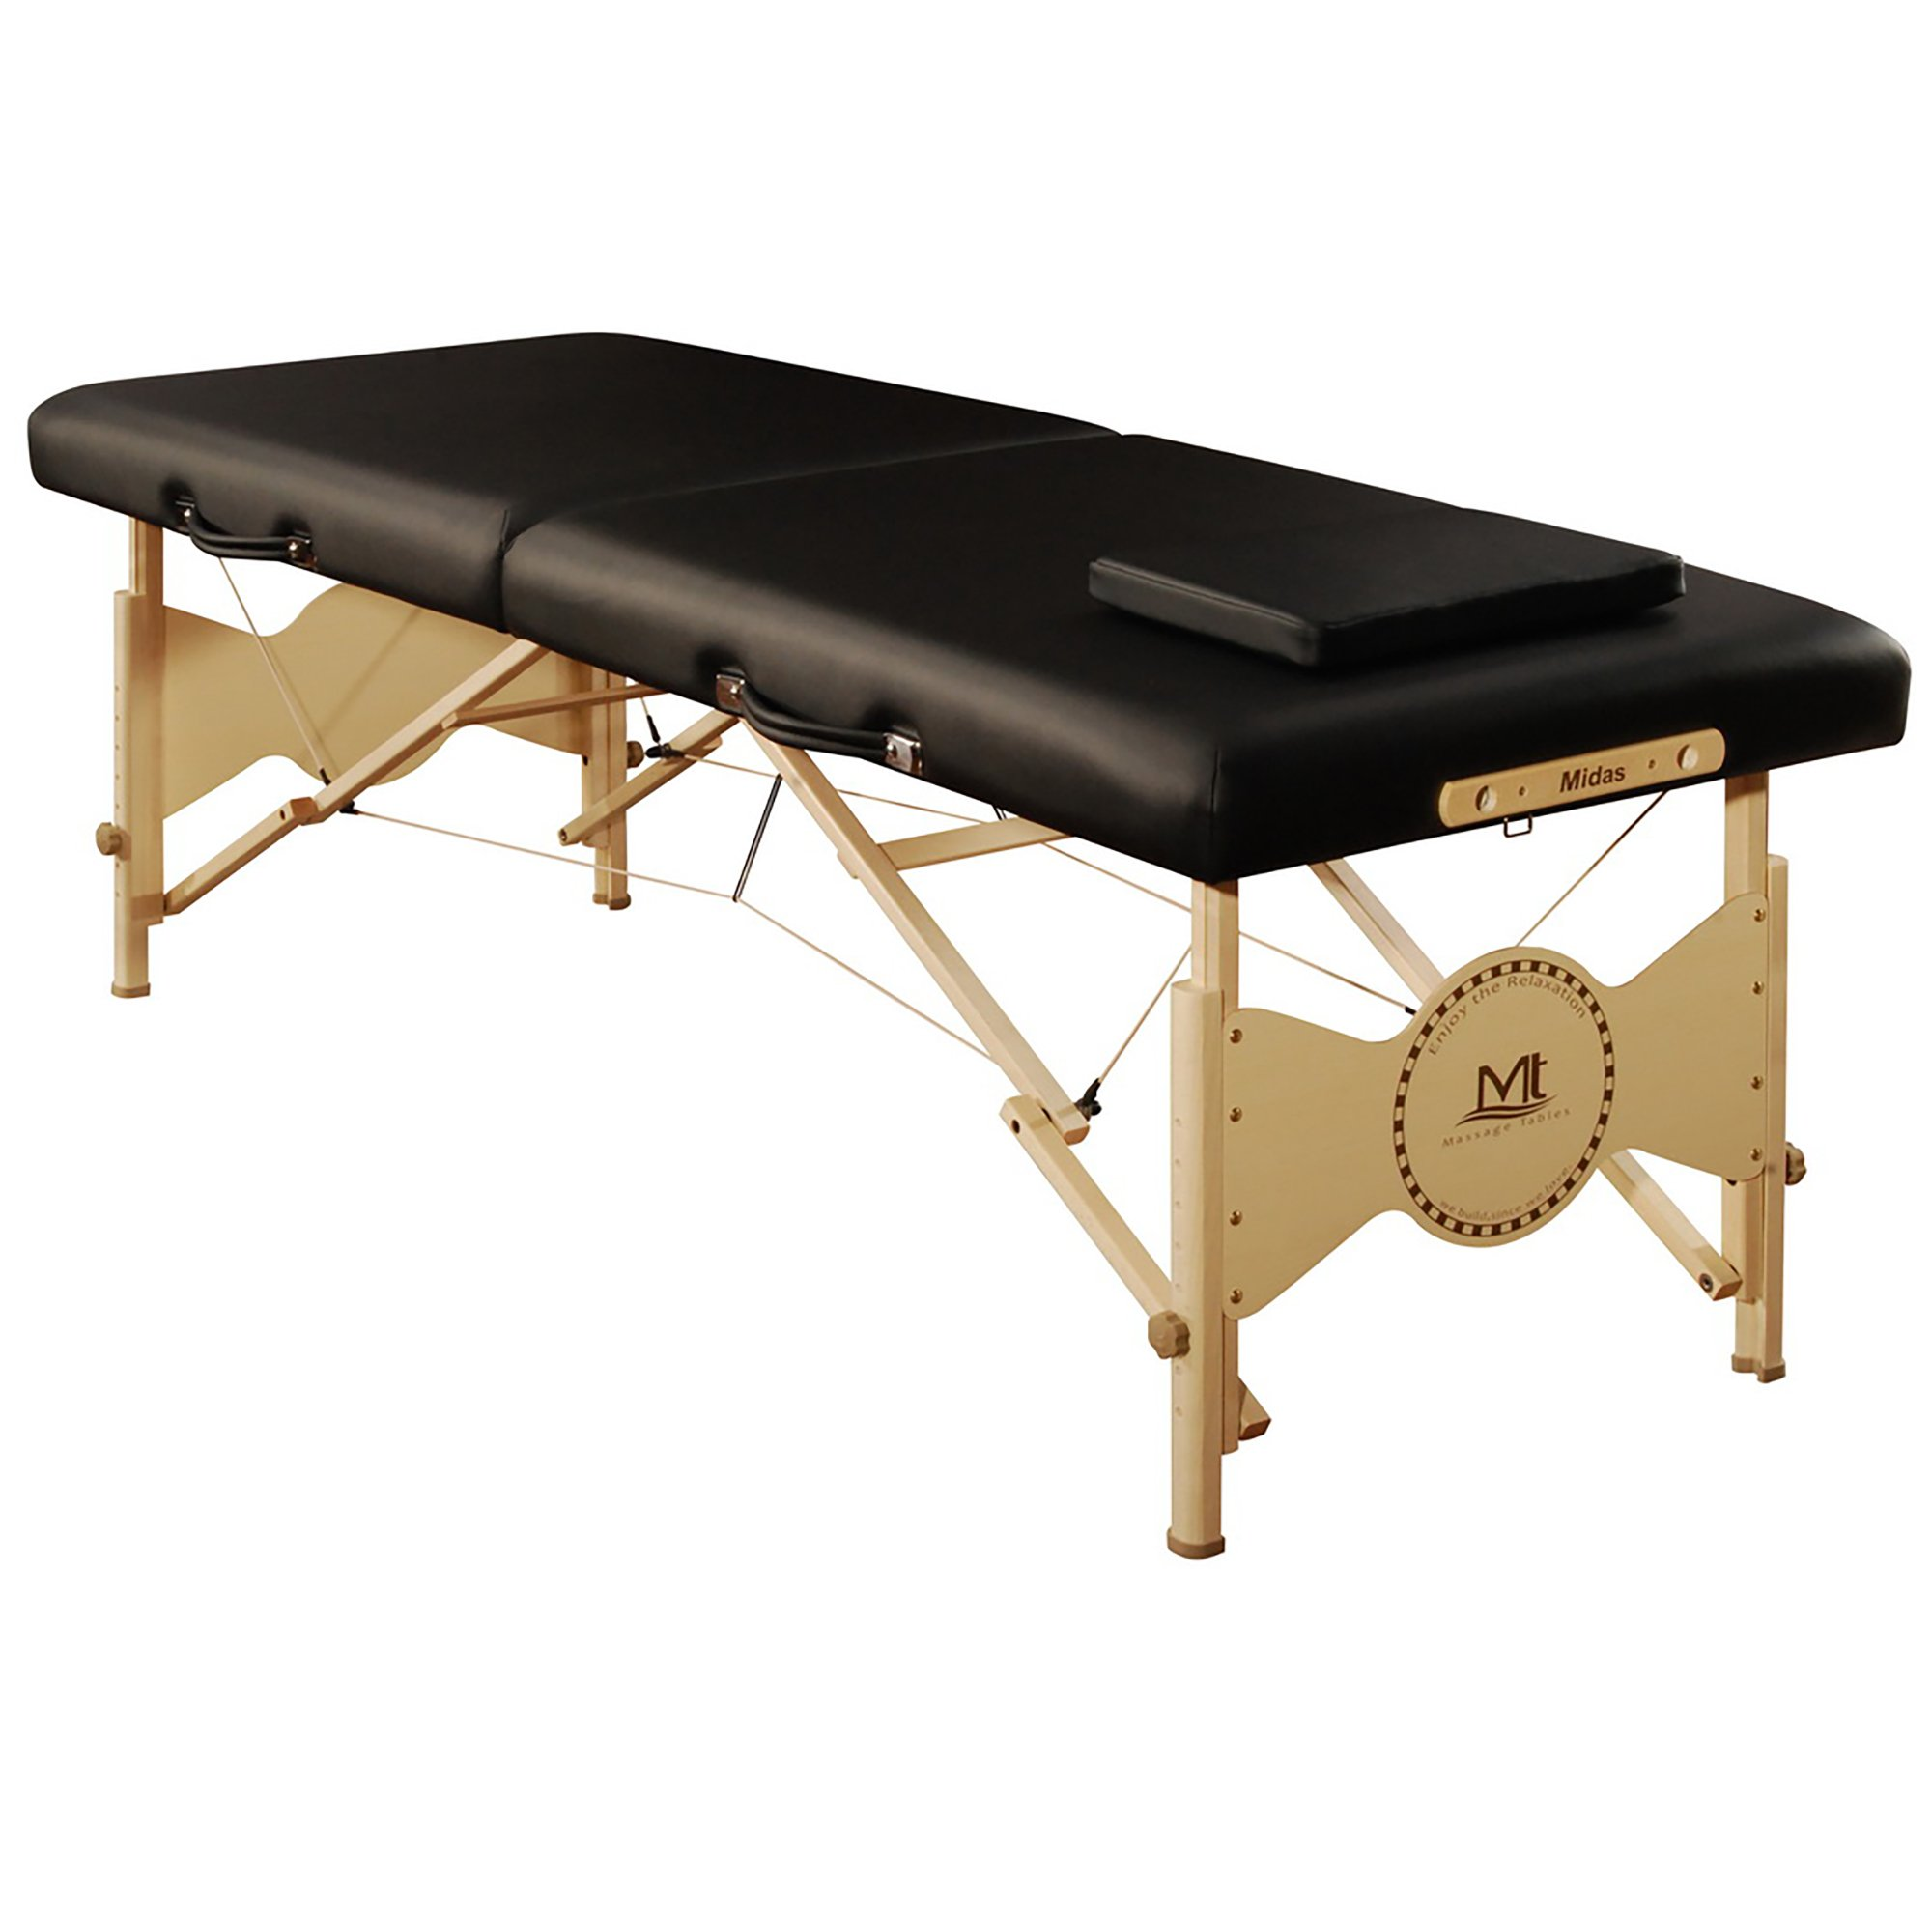 Mt massage Midas Entry 28'' Professional Portable Massage Table Package (Black)